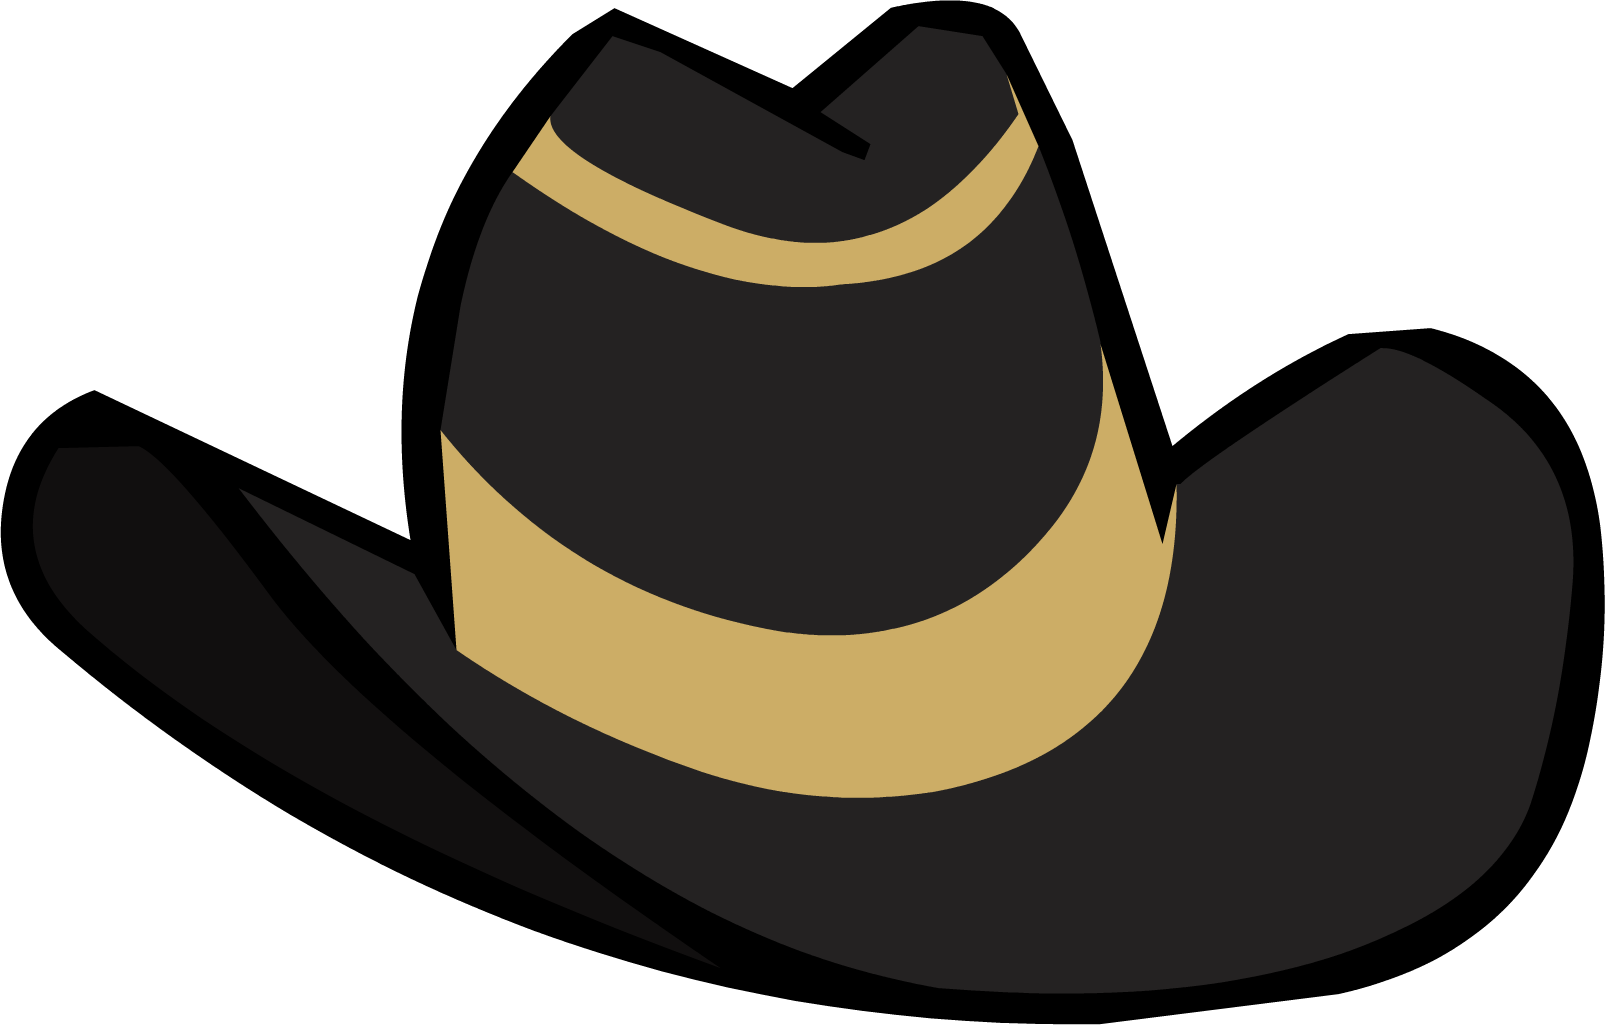 Luxury Cowboy Hat Club Penguin Rewritten Wiki Fandom All of these cowboy hat resources are for free download on pngtree. luxury cowboy hat club penguin